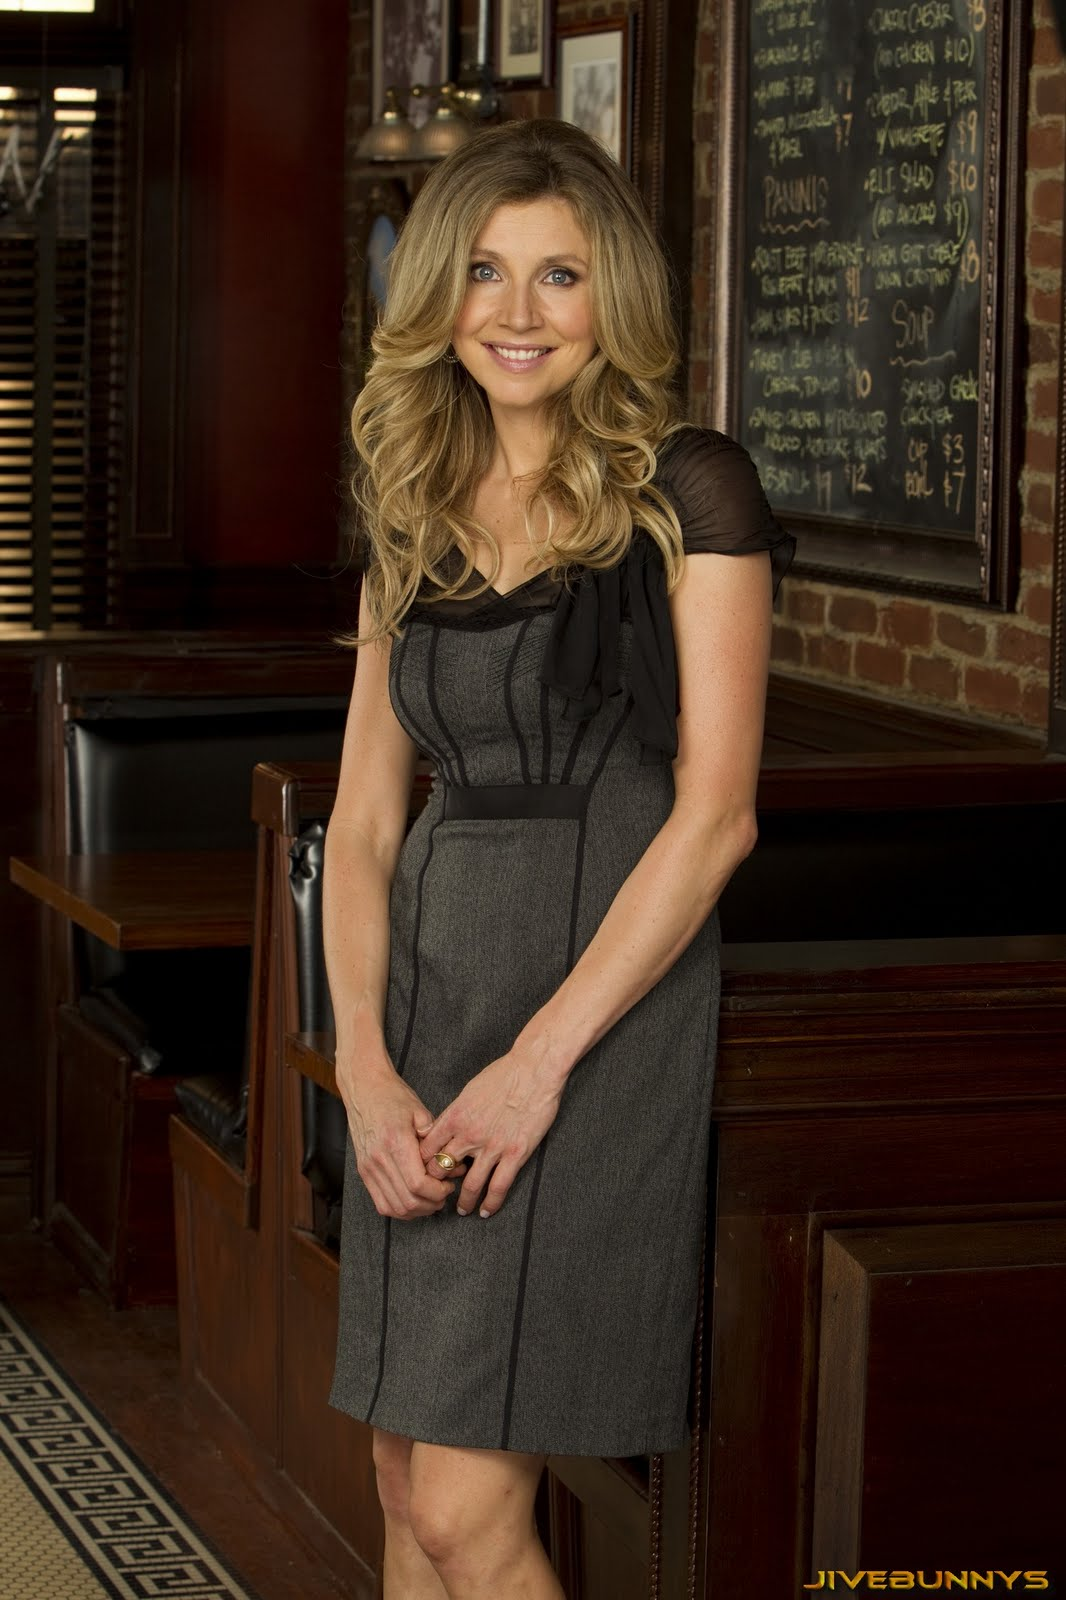 ... Celebrity Picture Gallery: Sarah Chalke Sexy Actress Photos Gallery 2